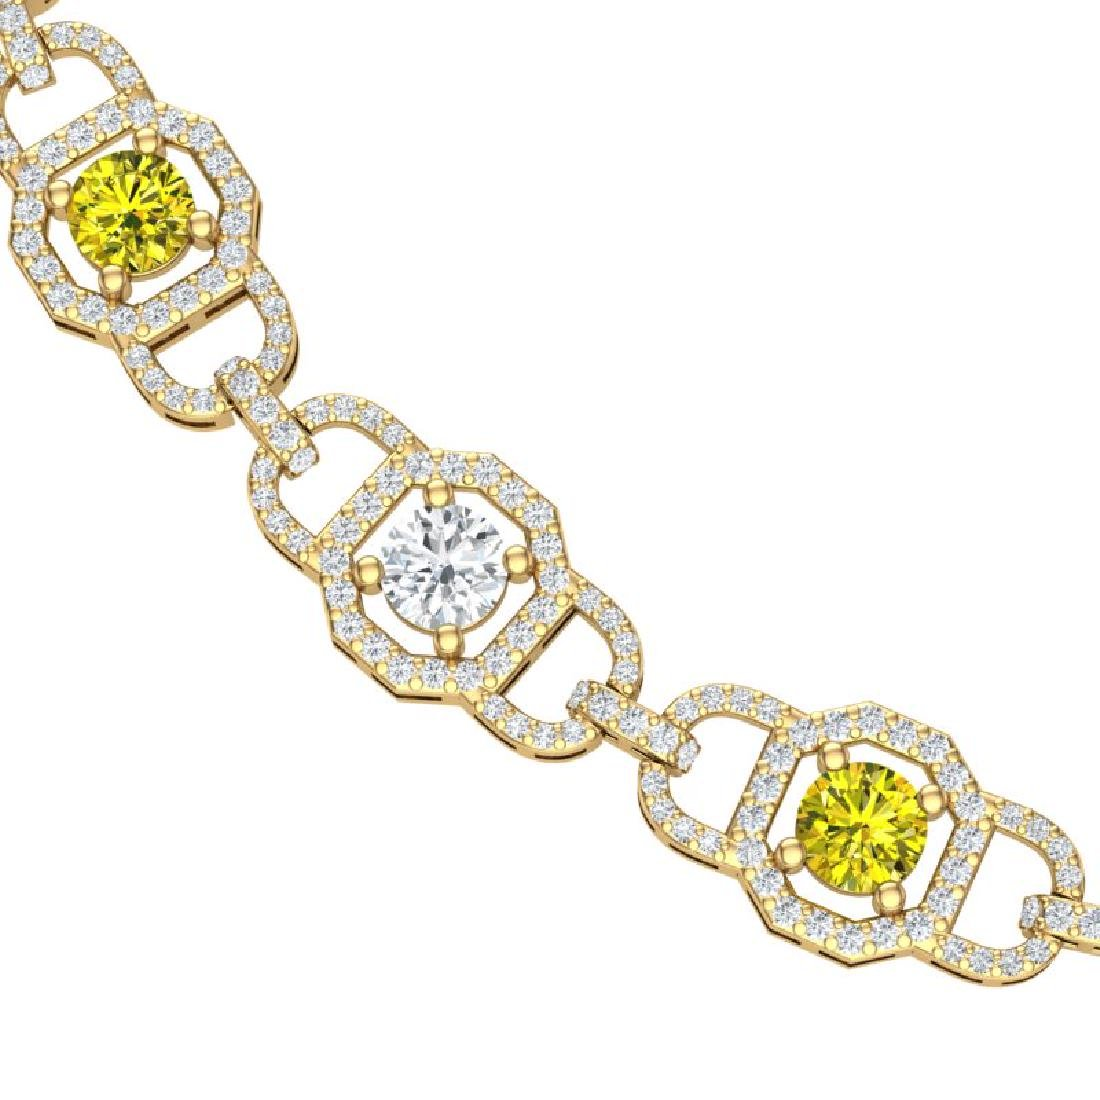 25 CTW SI/I Fancy Yellow And White Diamond Necklace 18K - 2